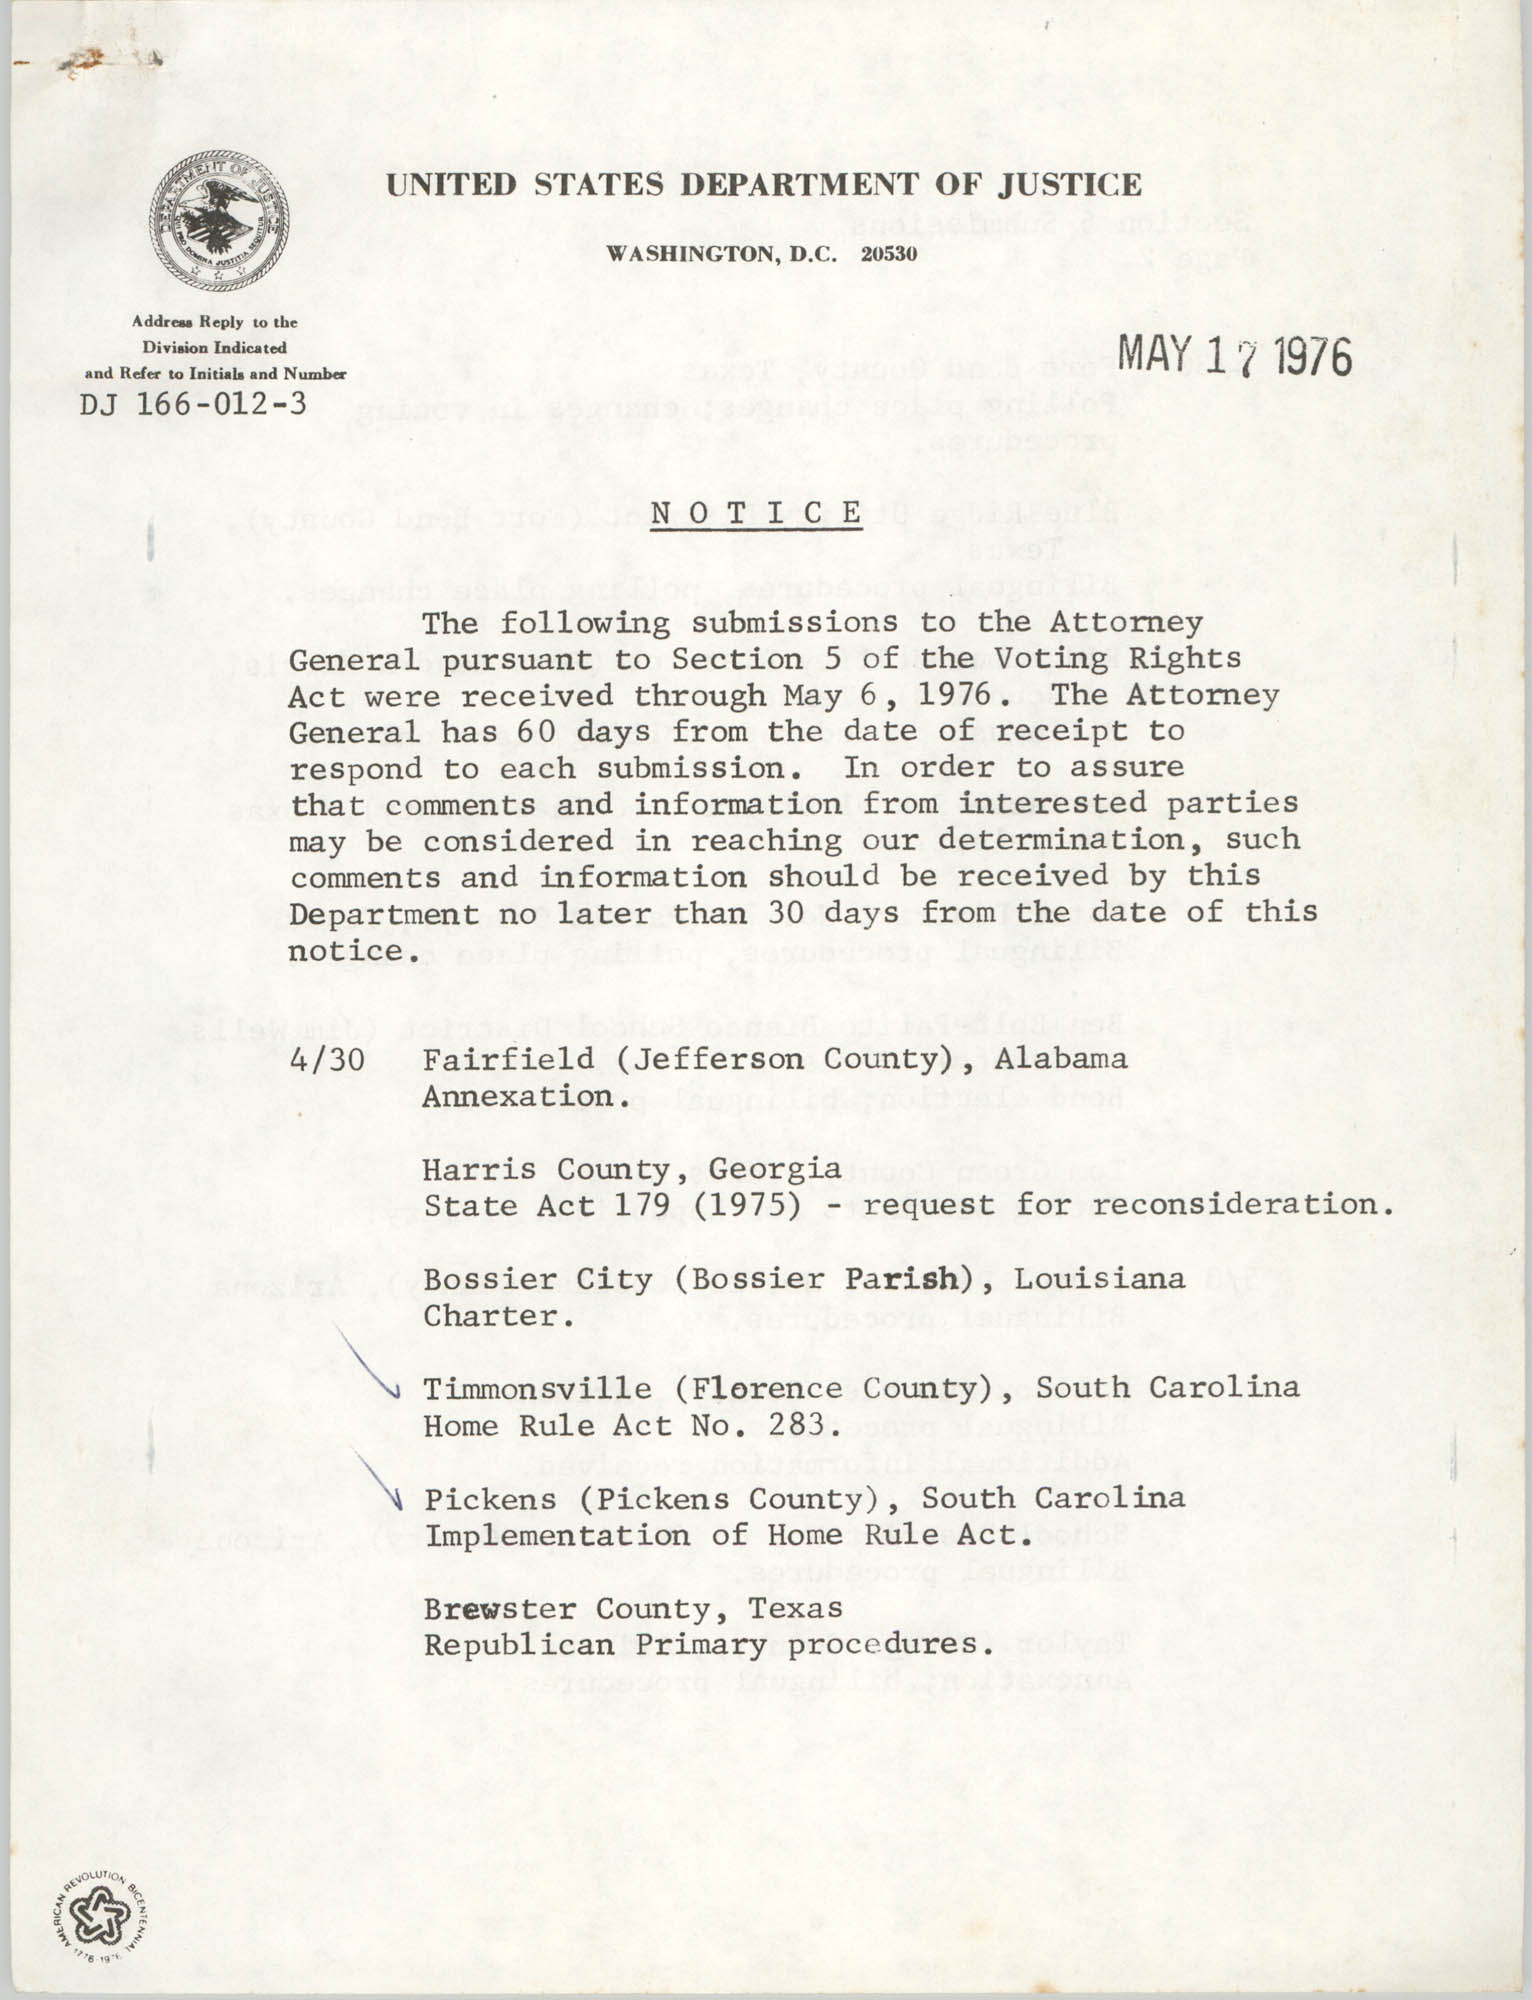 United States Department of Justice Notice, May 17, 1976